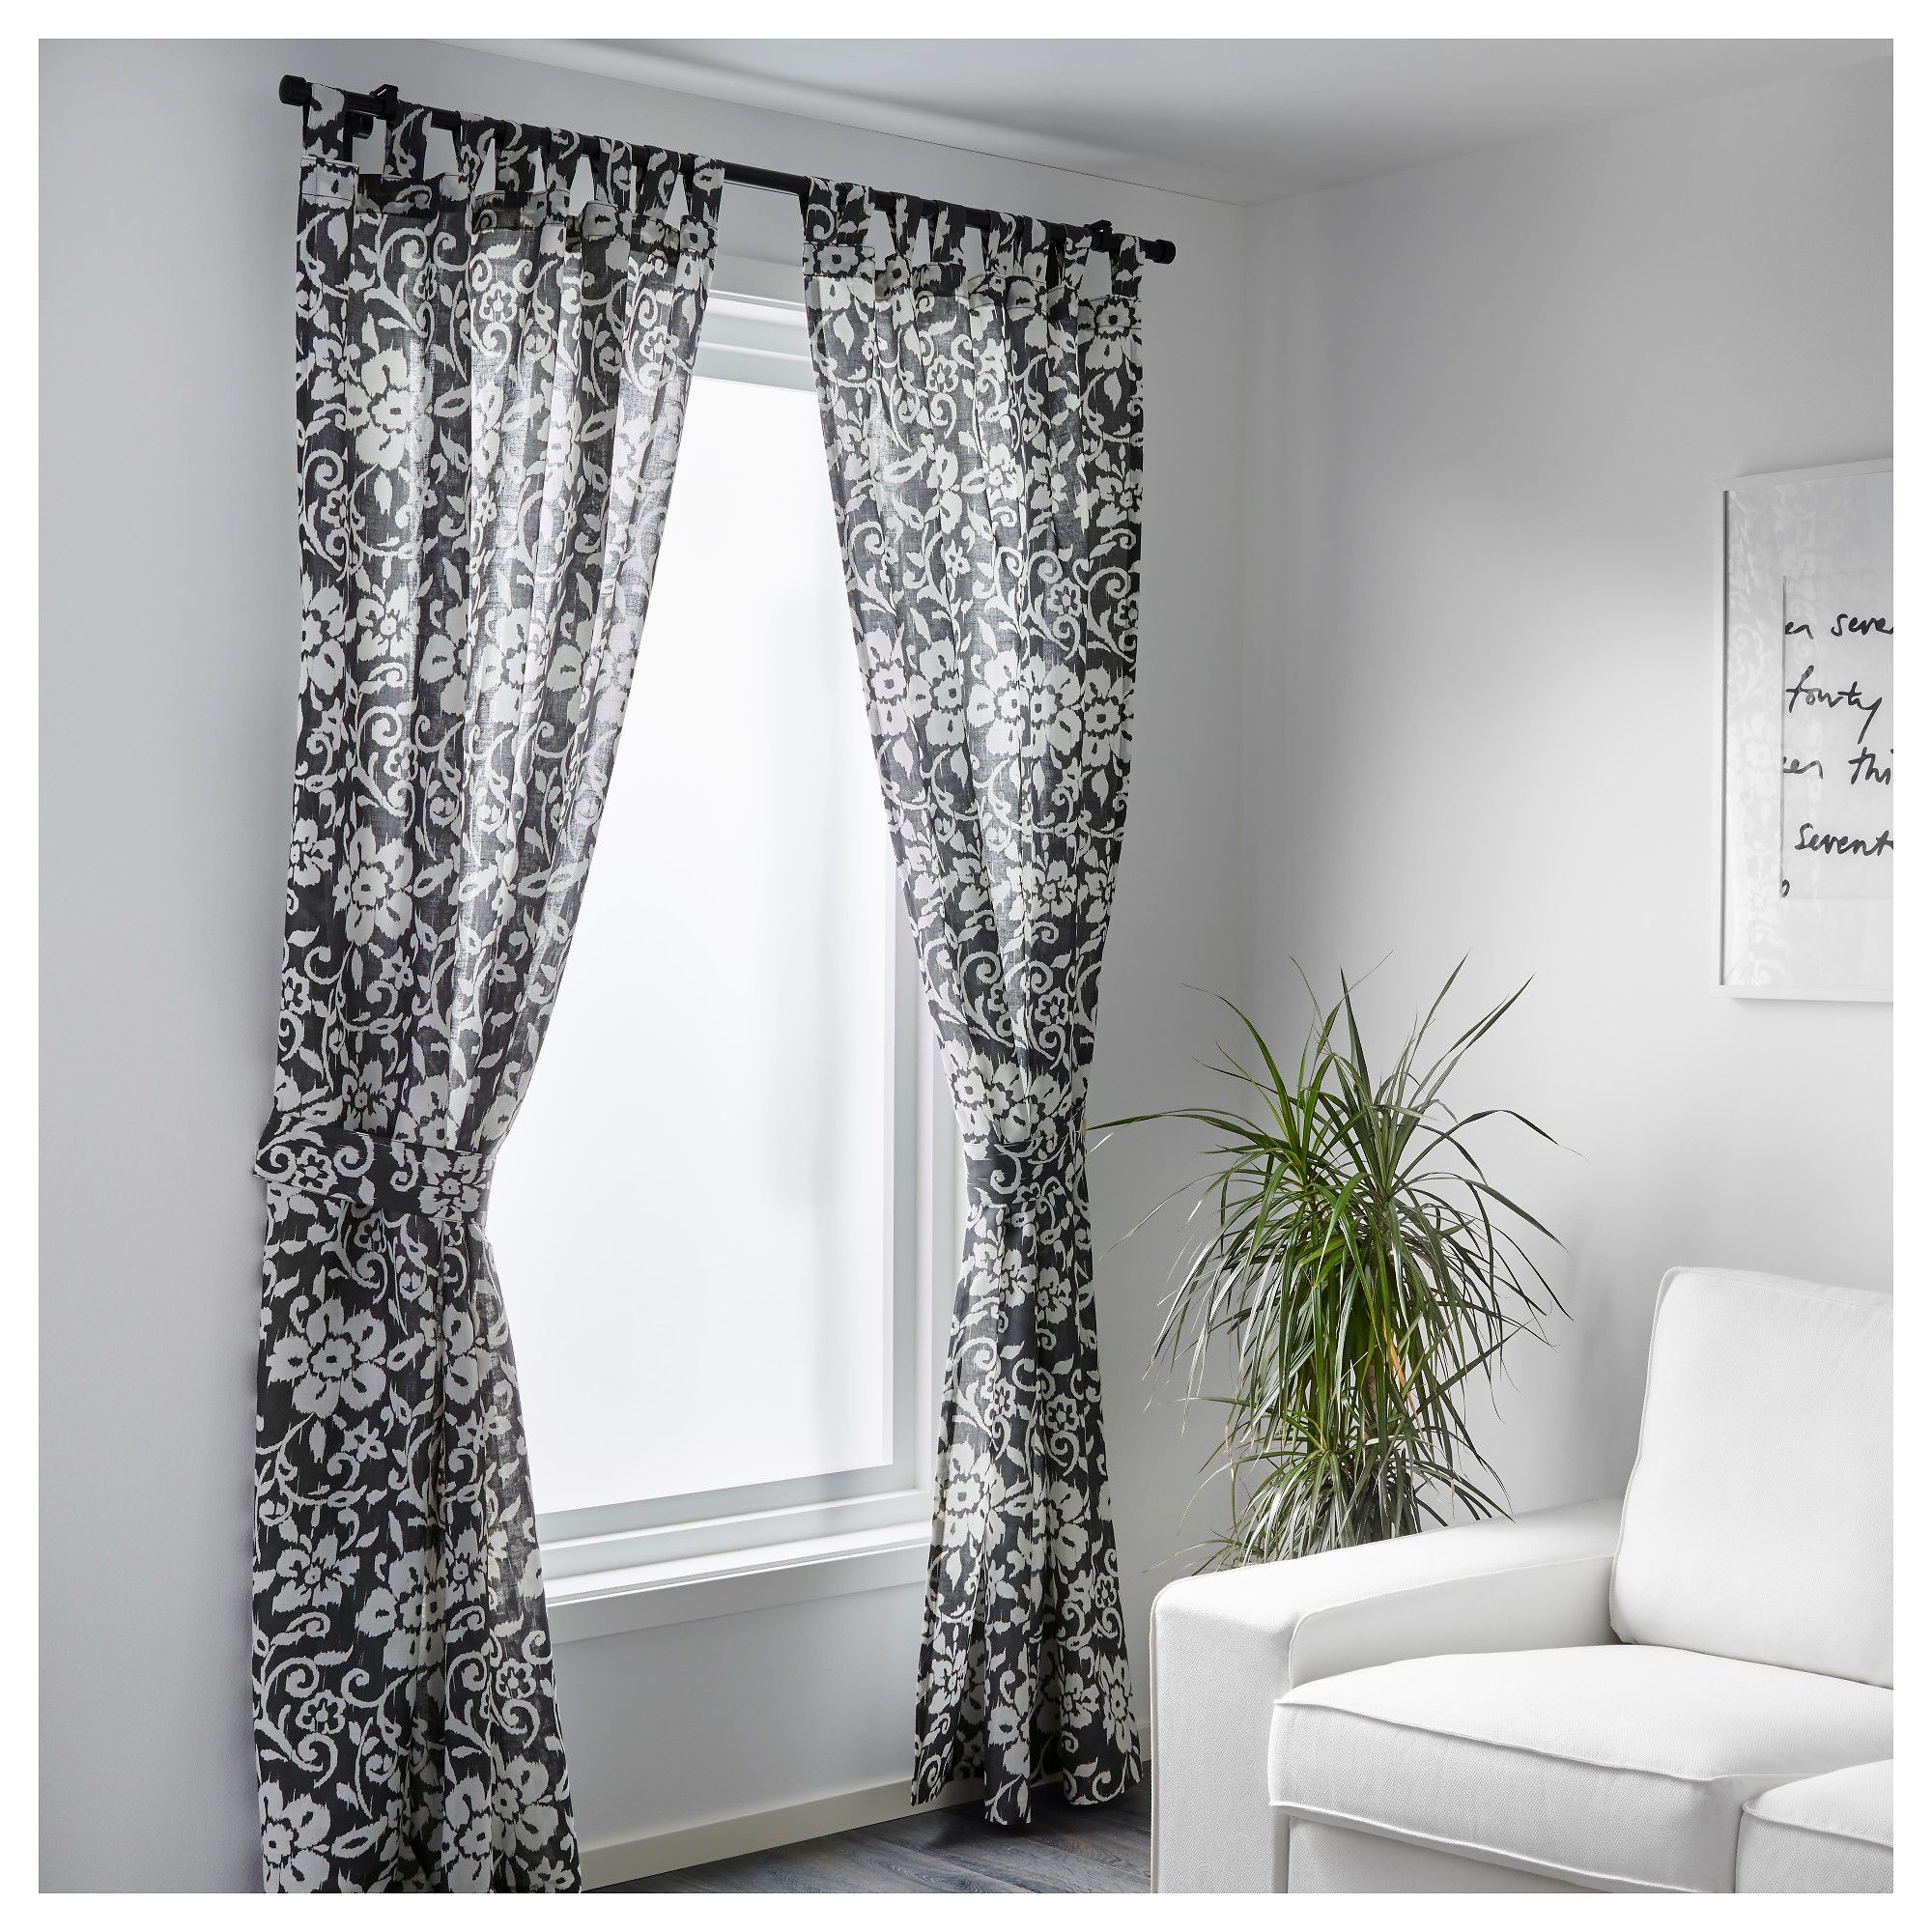 polyester window factory drapes cn curtains direct countrysearch wholesale china alibaba